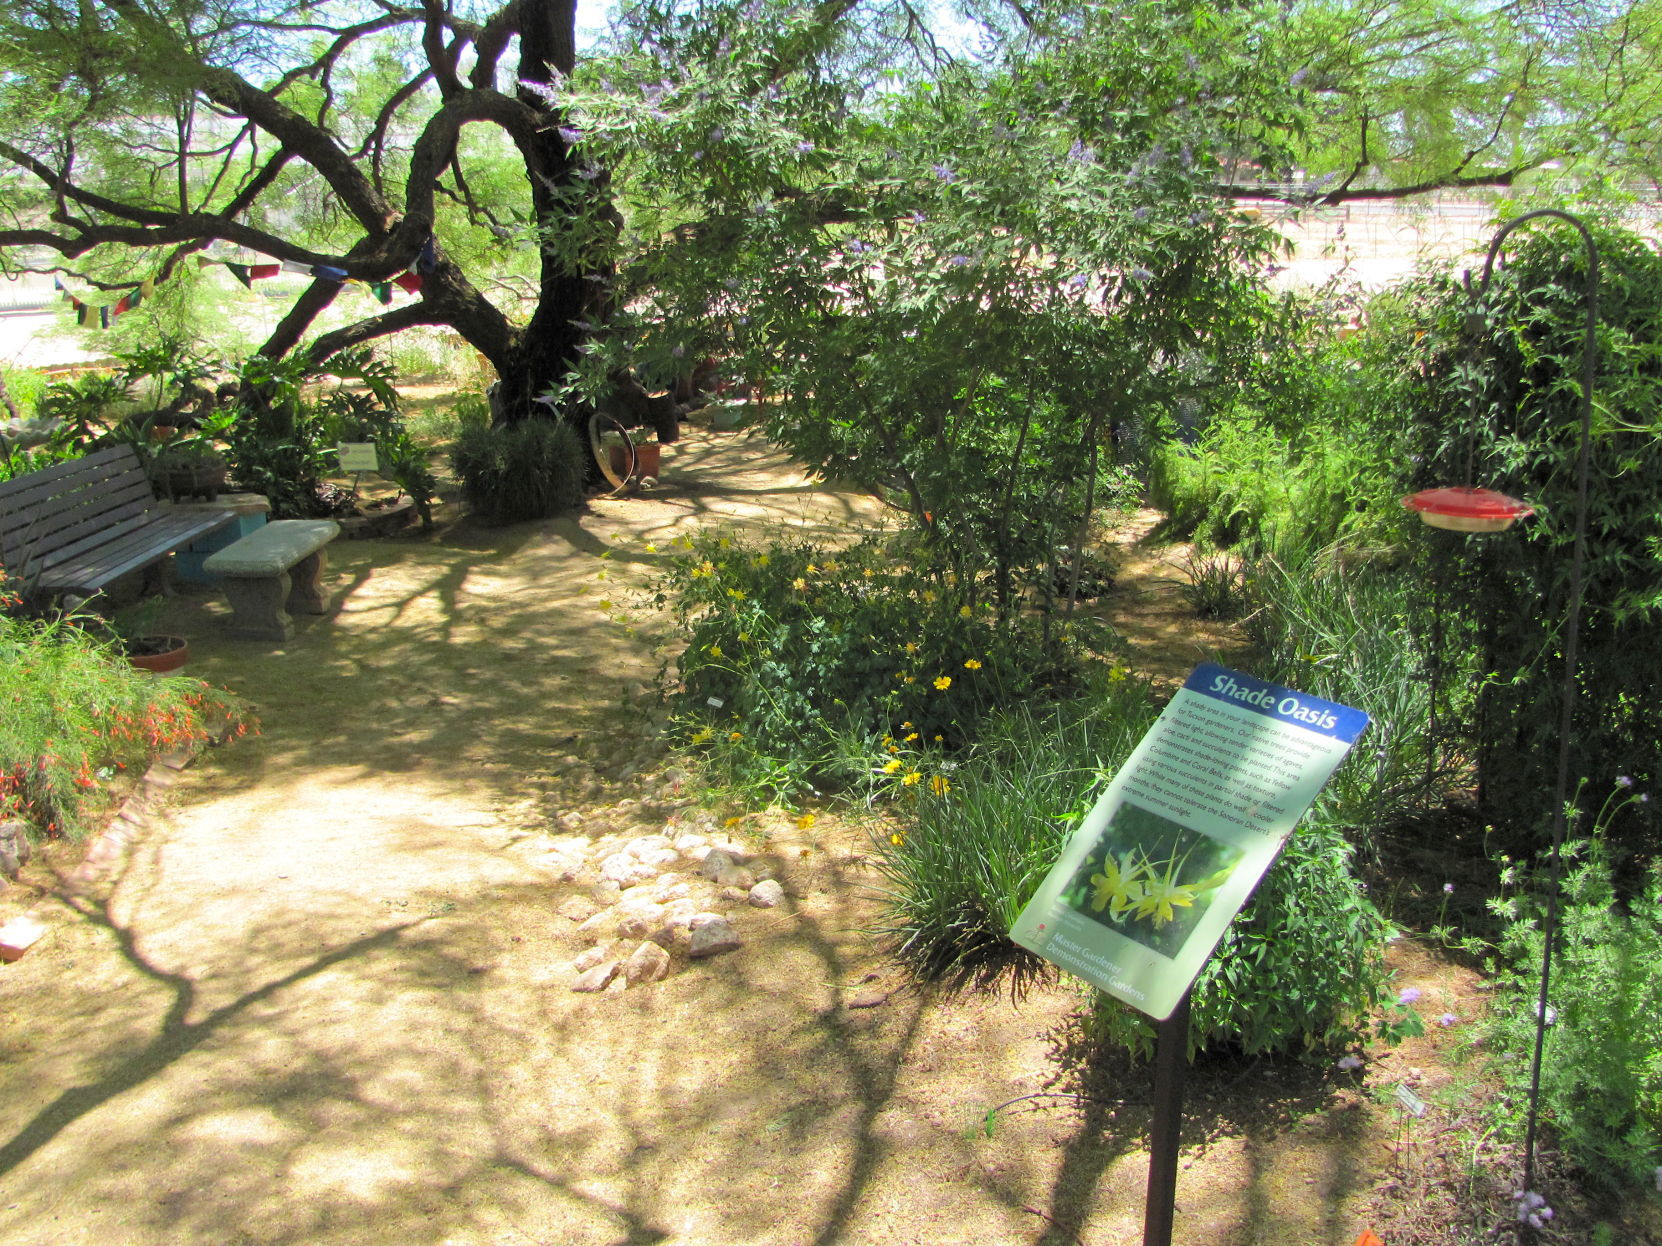 Steller column: 2 million new trees for Tucson? We need a hardy plan